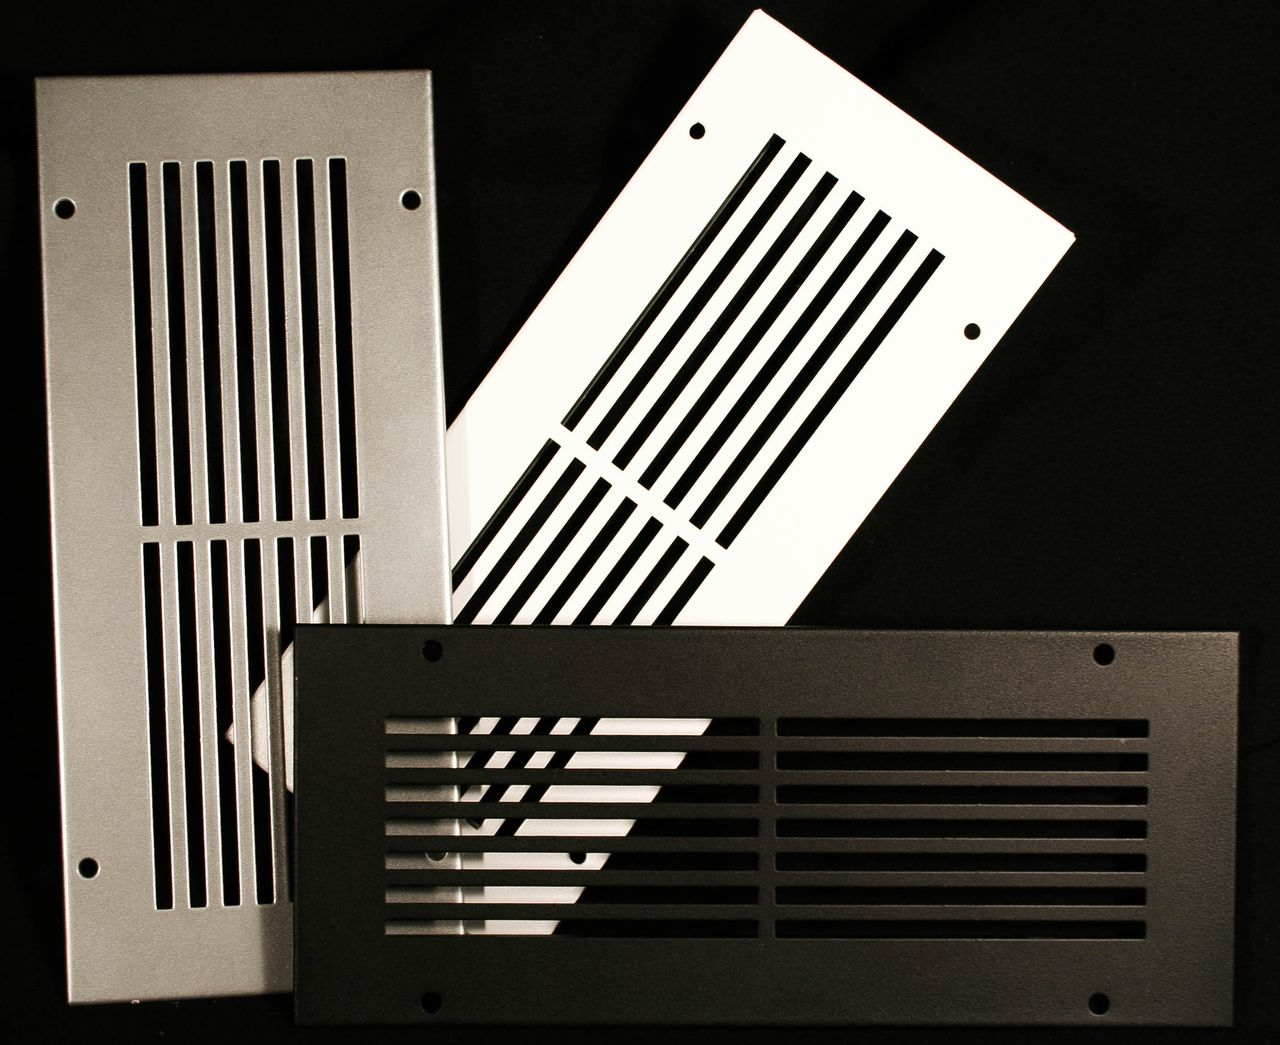 Slotted Vent Cover Vent covers, Baseboard heater covers